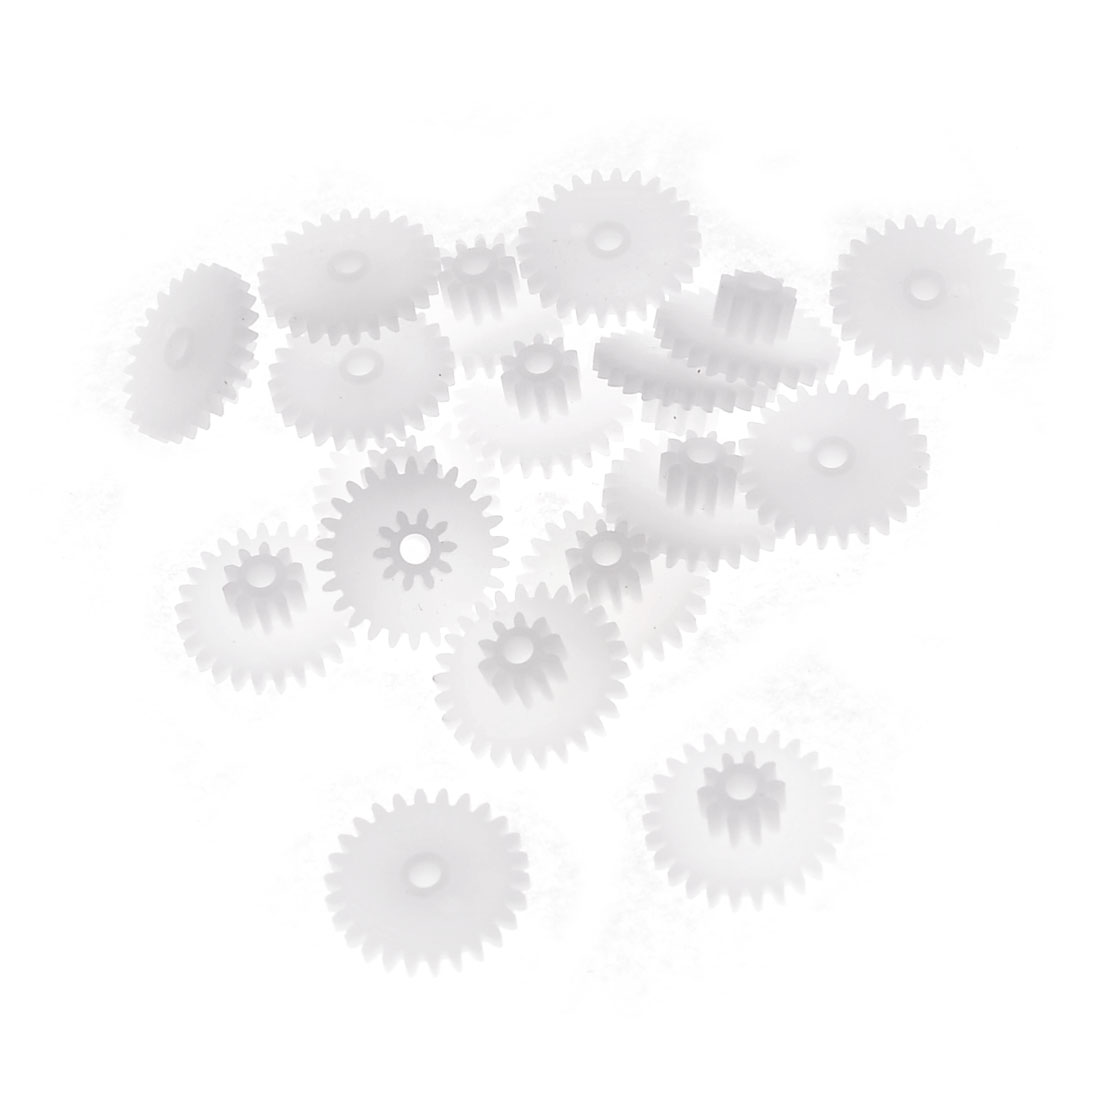 20 Pcs White Plastic Electrical Machanical Model Gear 14 x 1.5mm